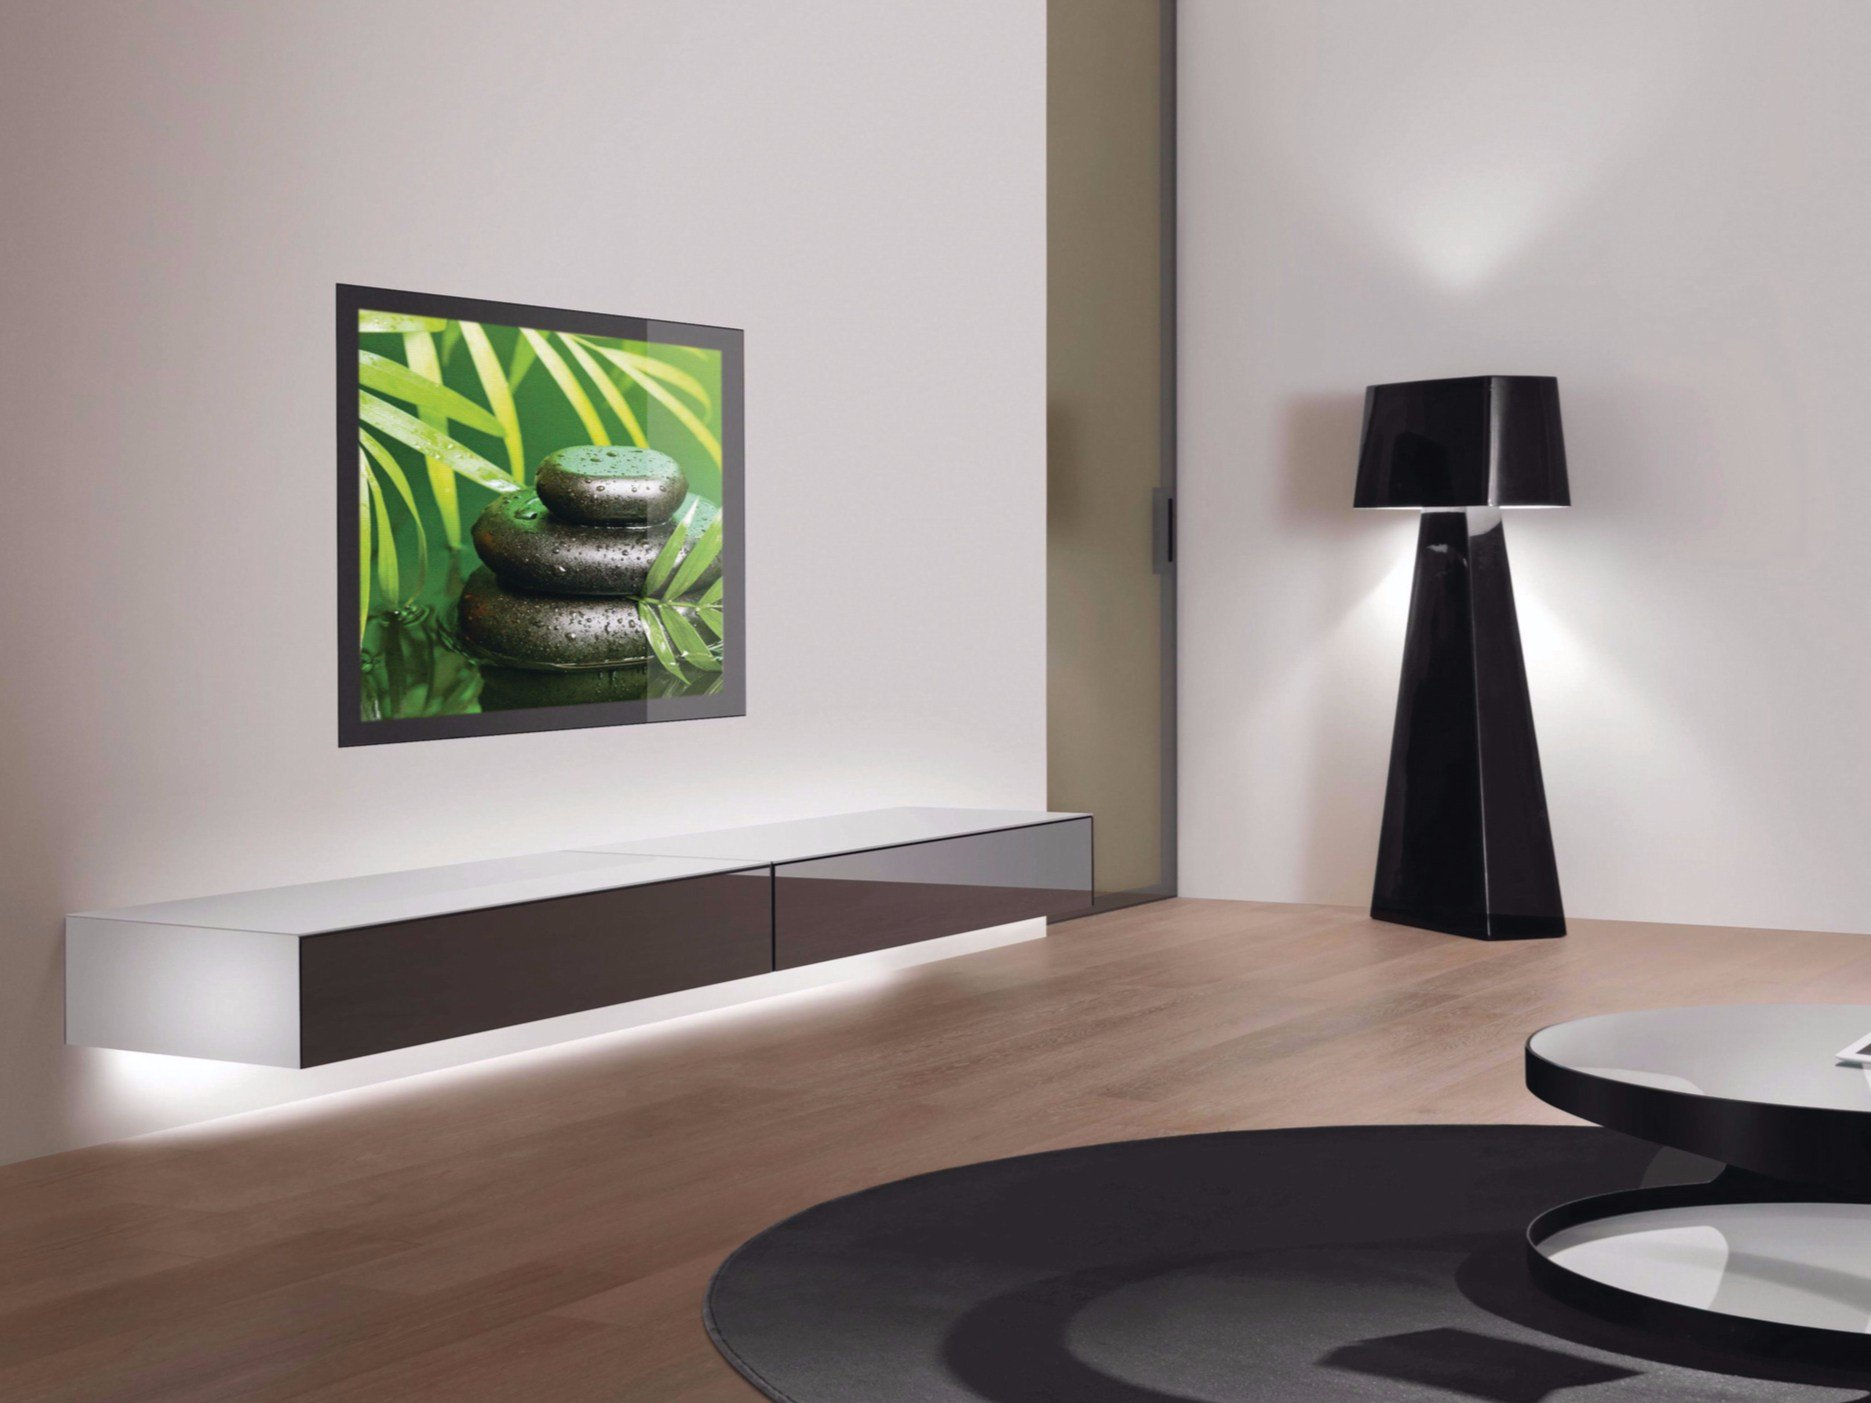 Wall Mounted Tv Cabinet With Built In Speakers Zero Zero